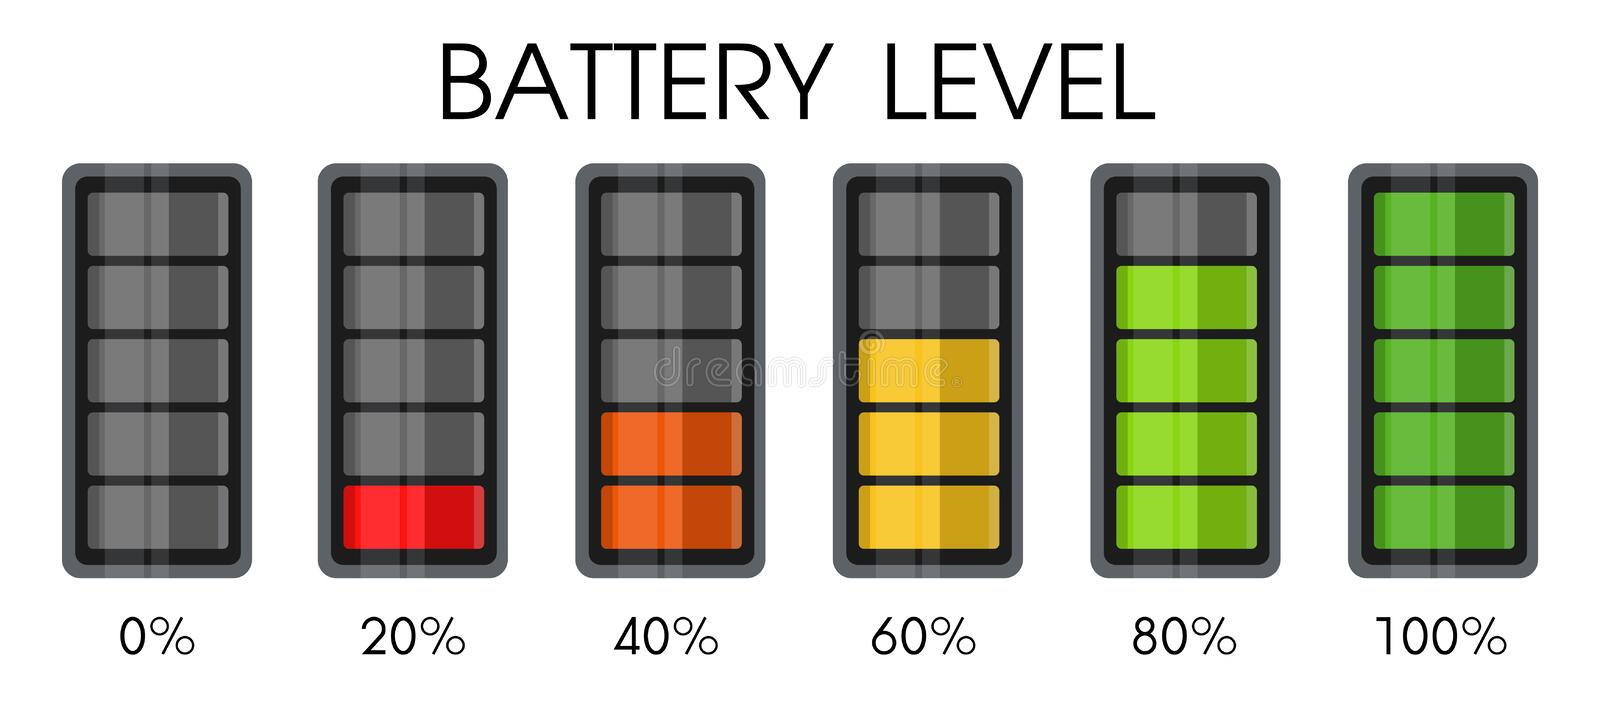 Power level icon on the smartphone battery royalty free illustration